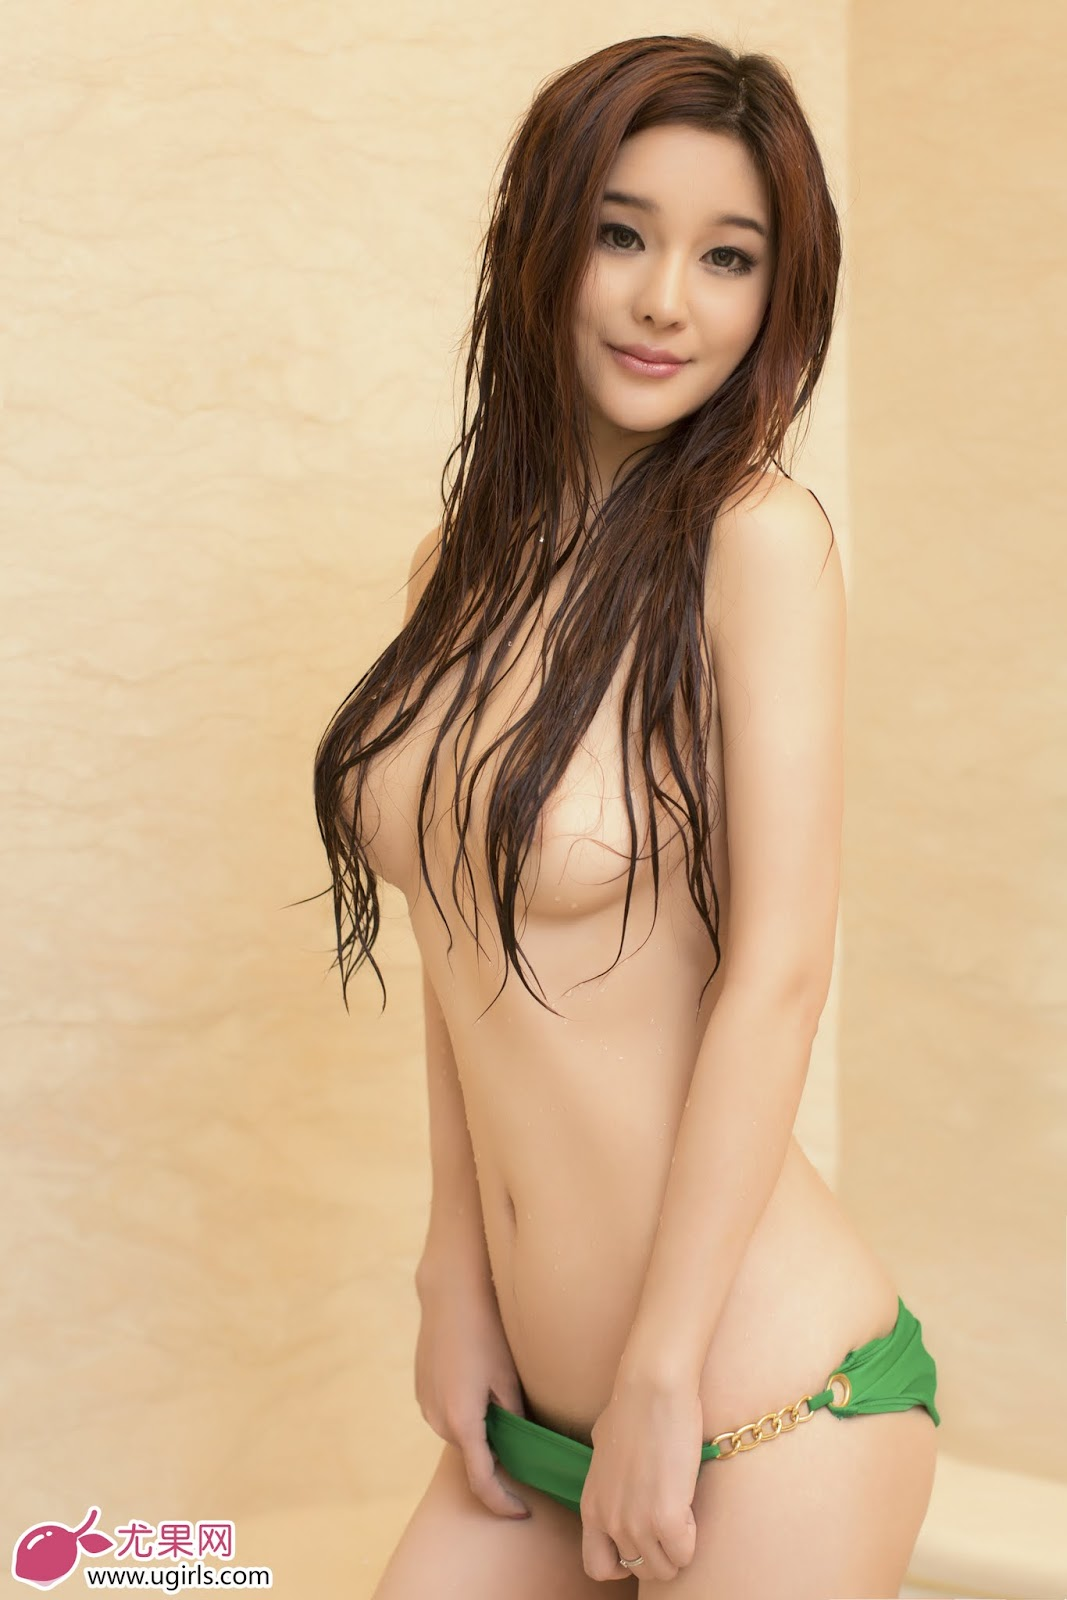 EZ0A0815 - Ugirls No.016 Model 纯小希 (Chun Xiao Xi)